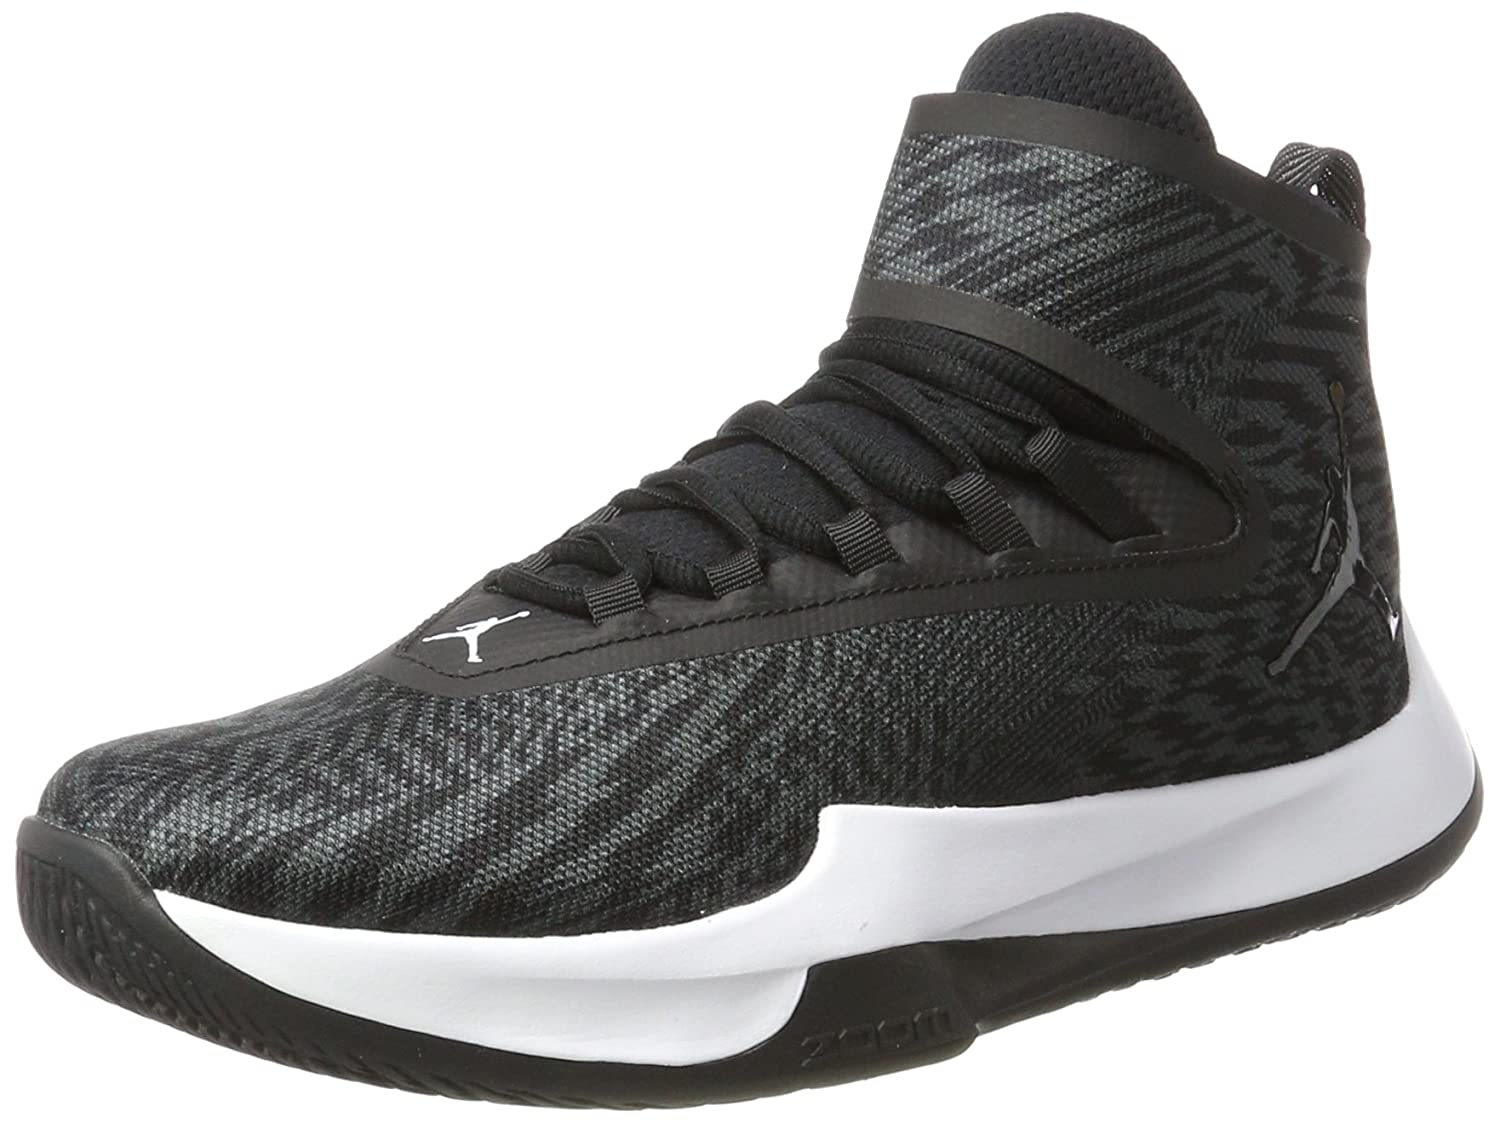 new product ad0c4 36195 Amazon.com   Nike Jordan Fly Unlimited AA1282 010 Black Anthracite (11.5)    Basketball